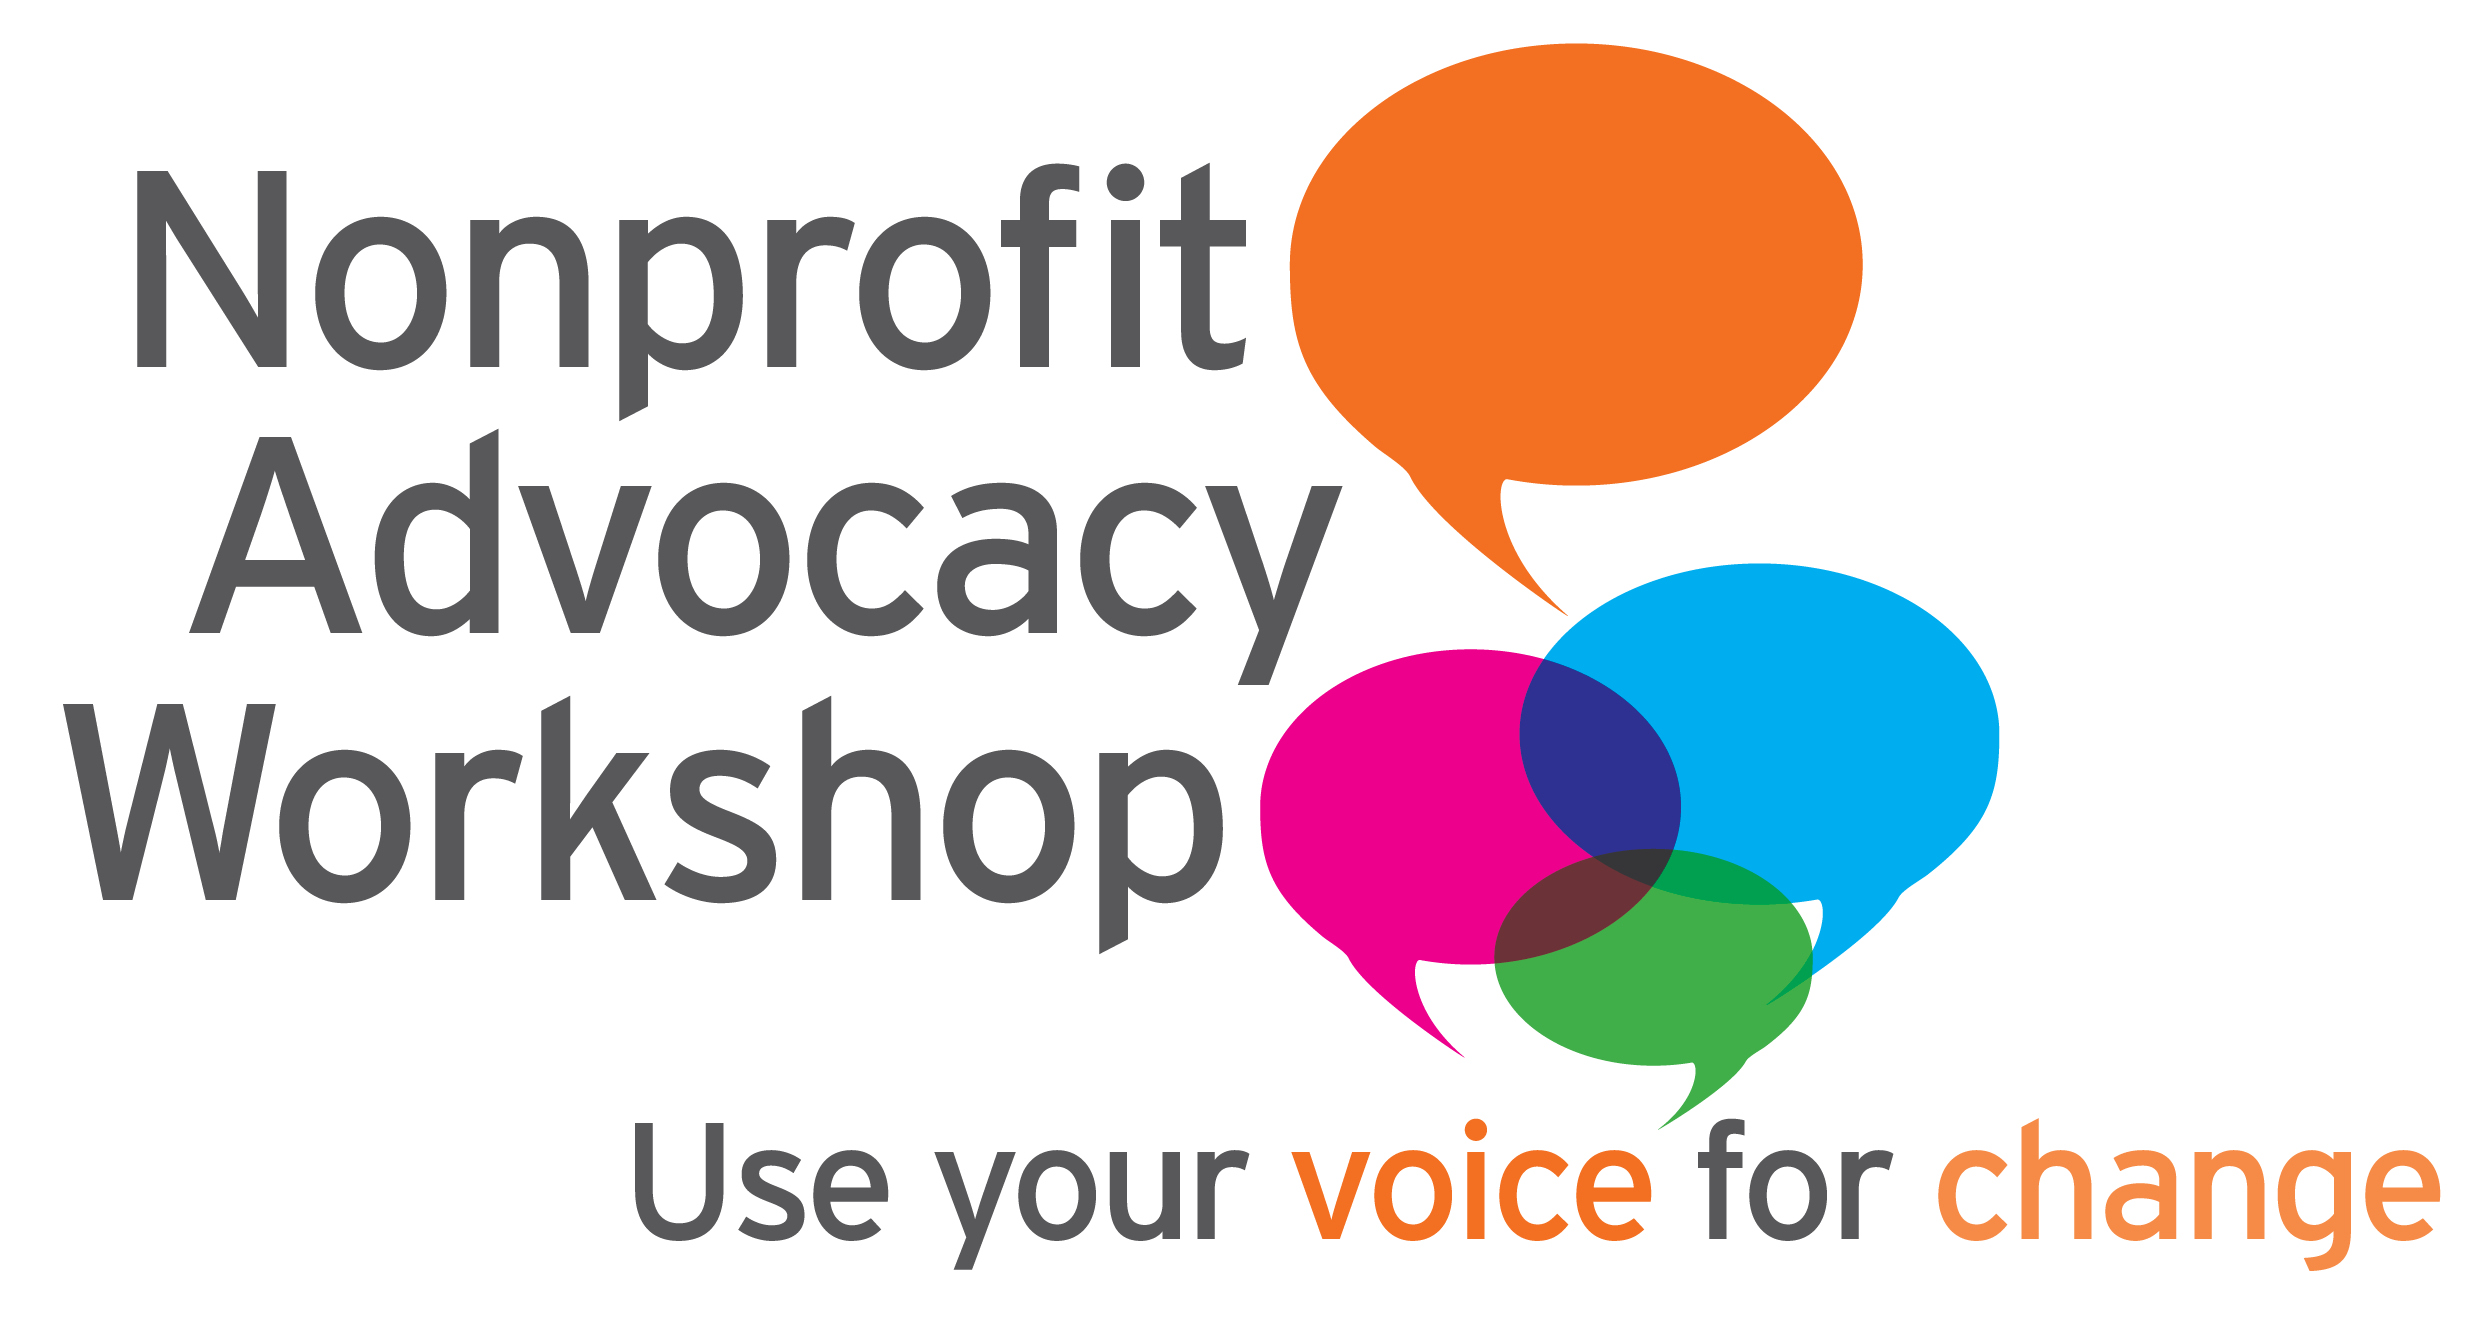 Nonprofit Advocacy Workshop Logo